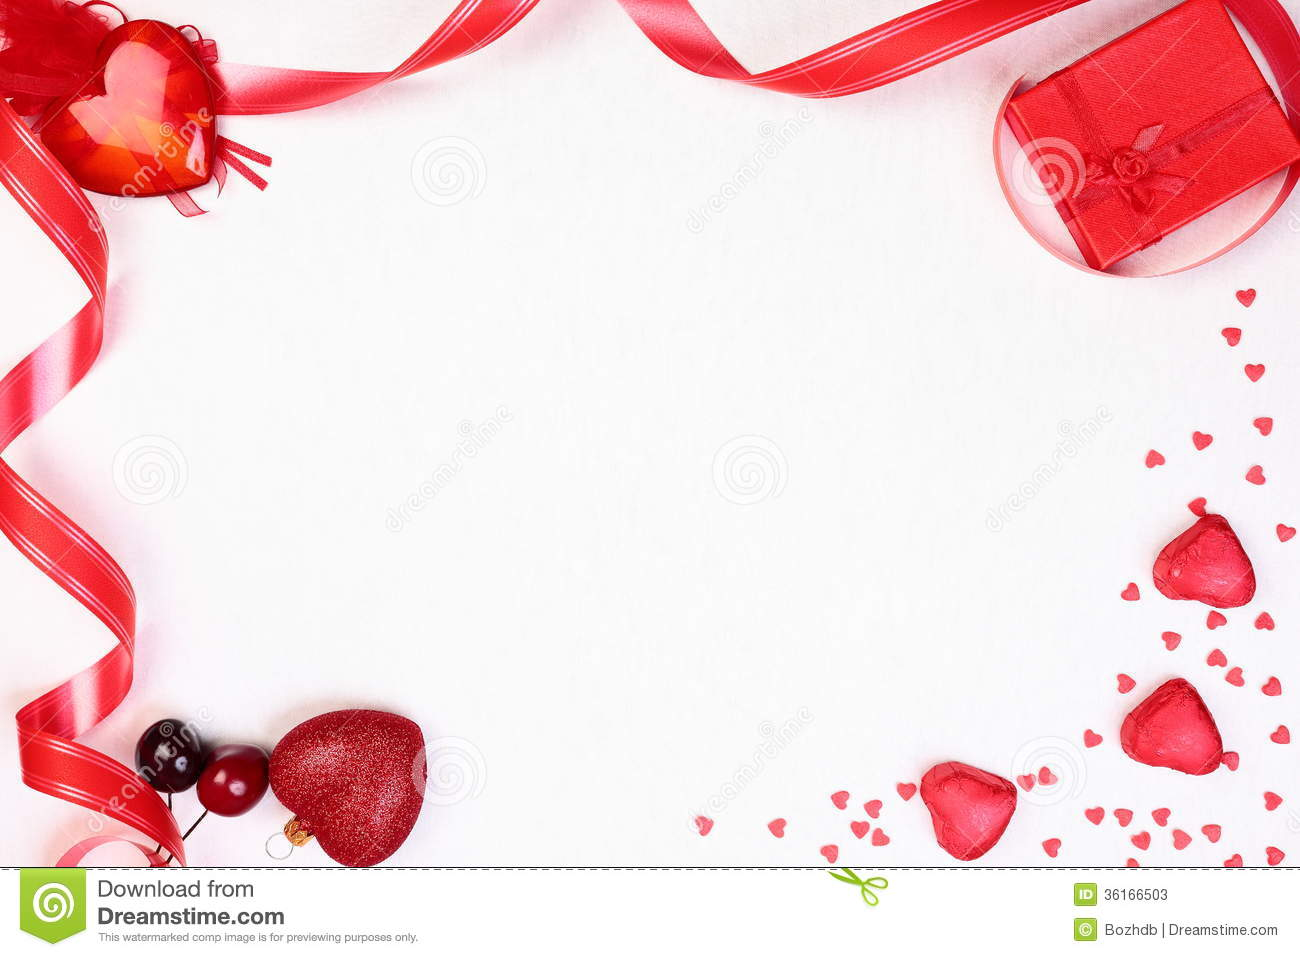 valentines day presents gift stock photos image 36166503 31036